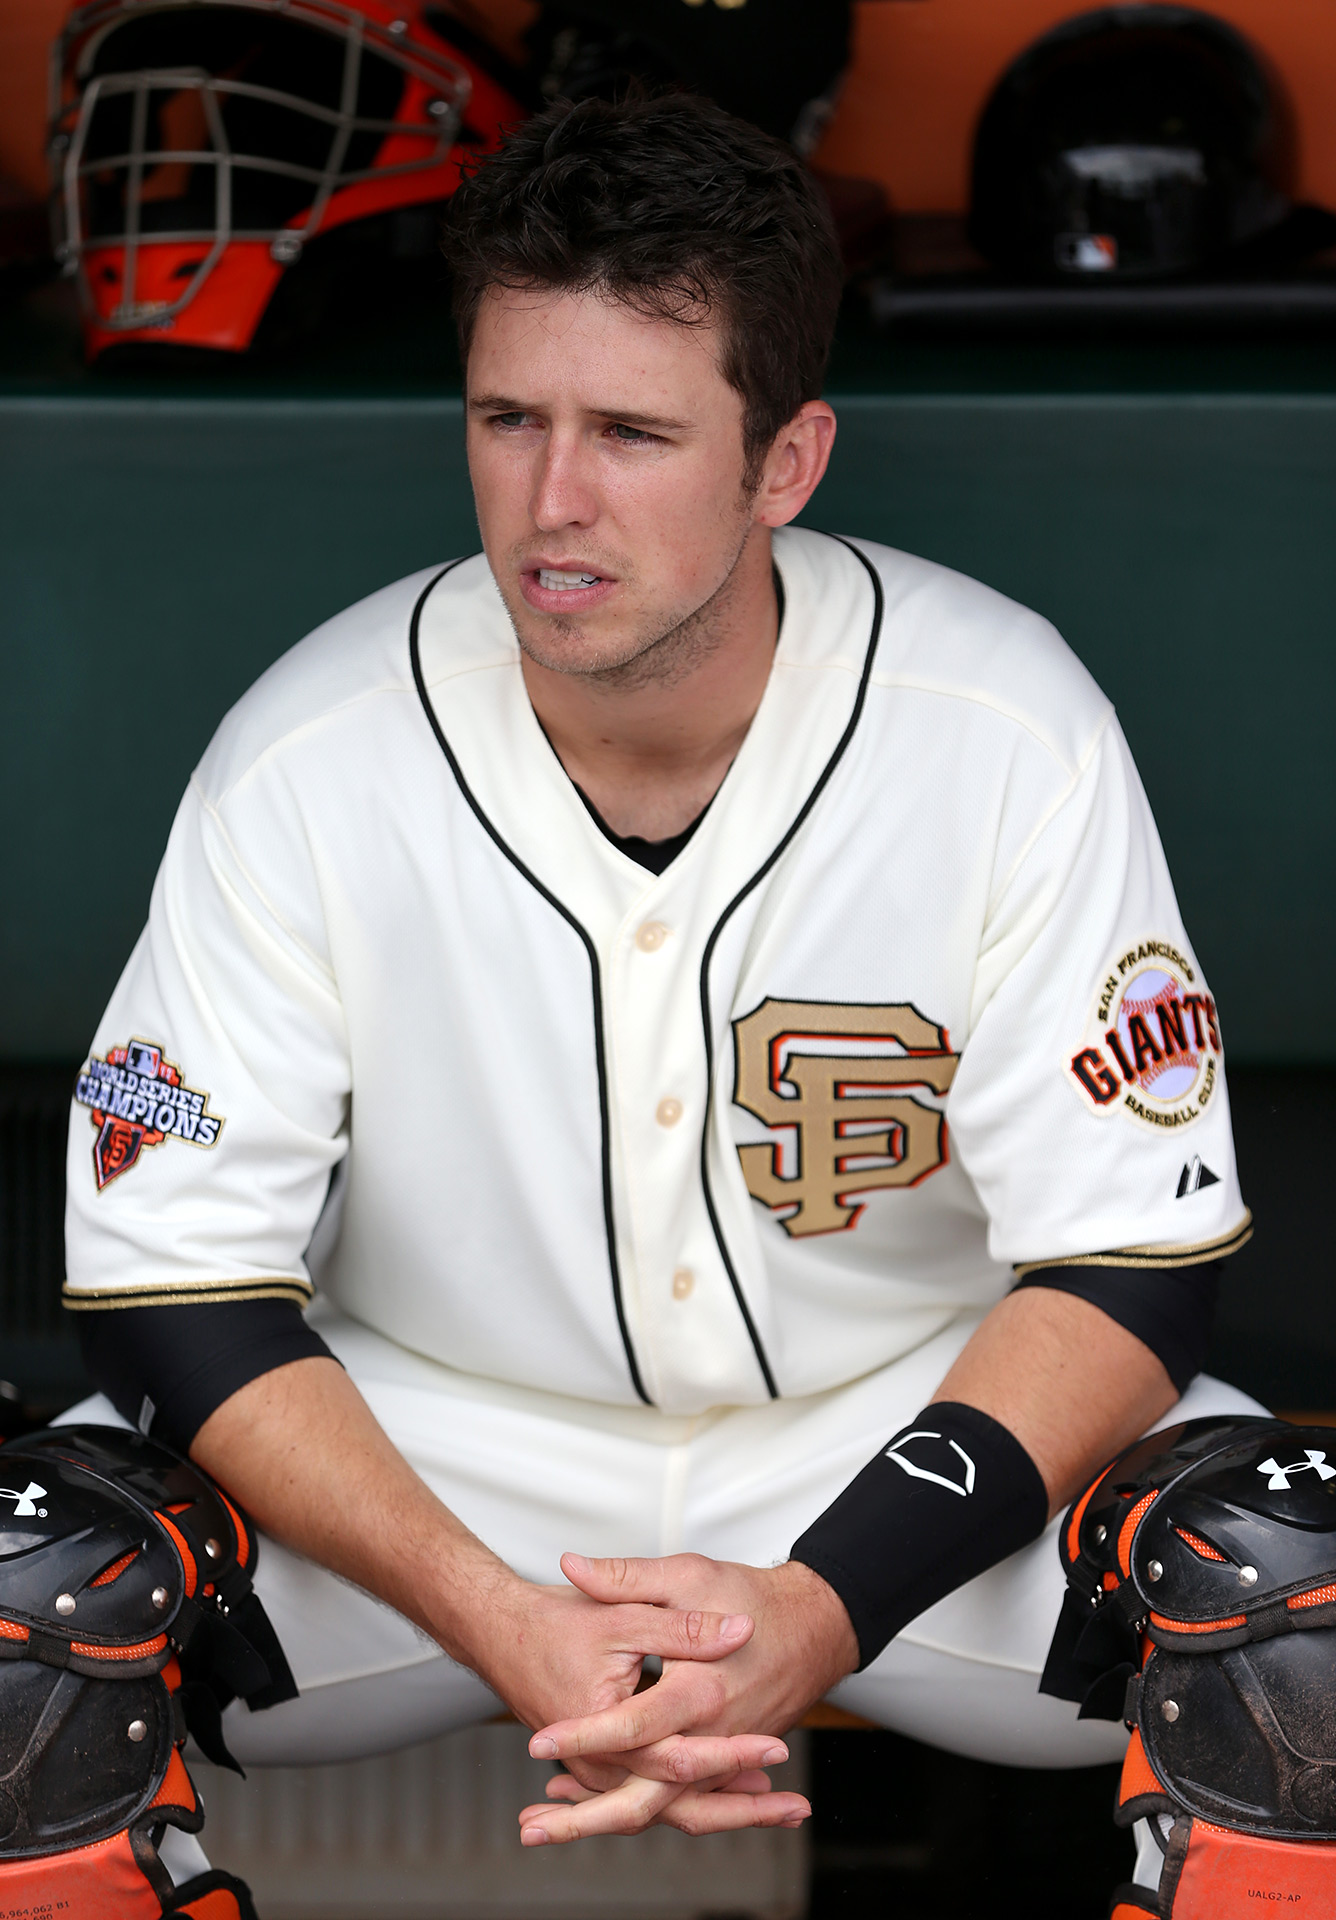 9. Buster Posey, Giants - 2 percent